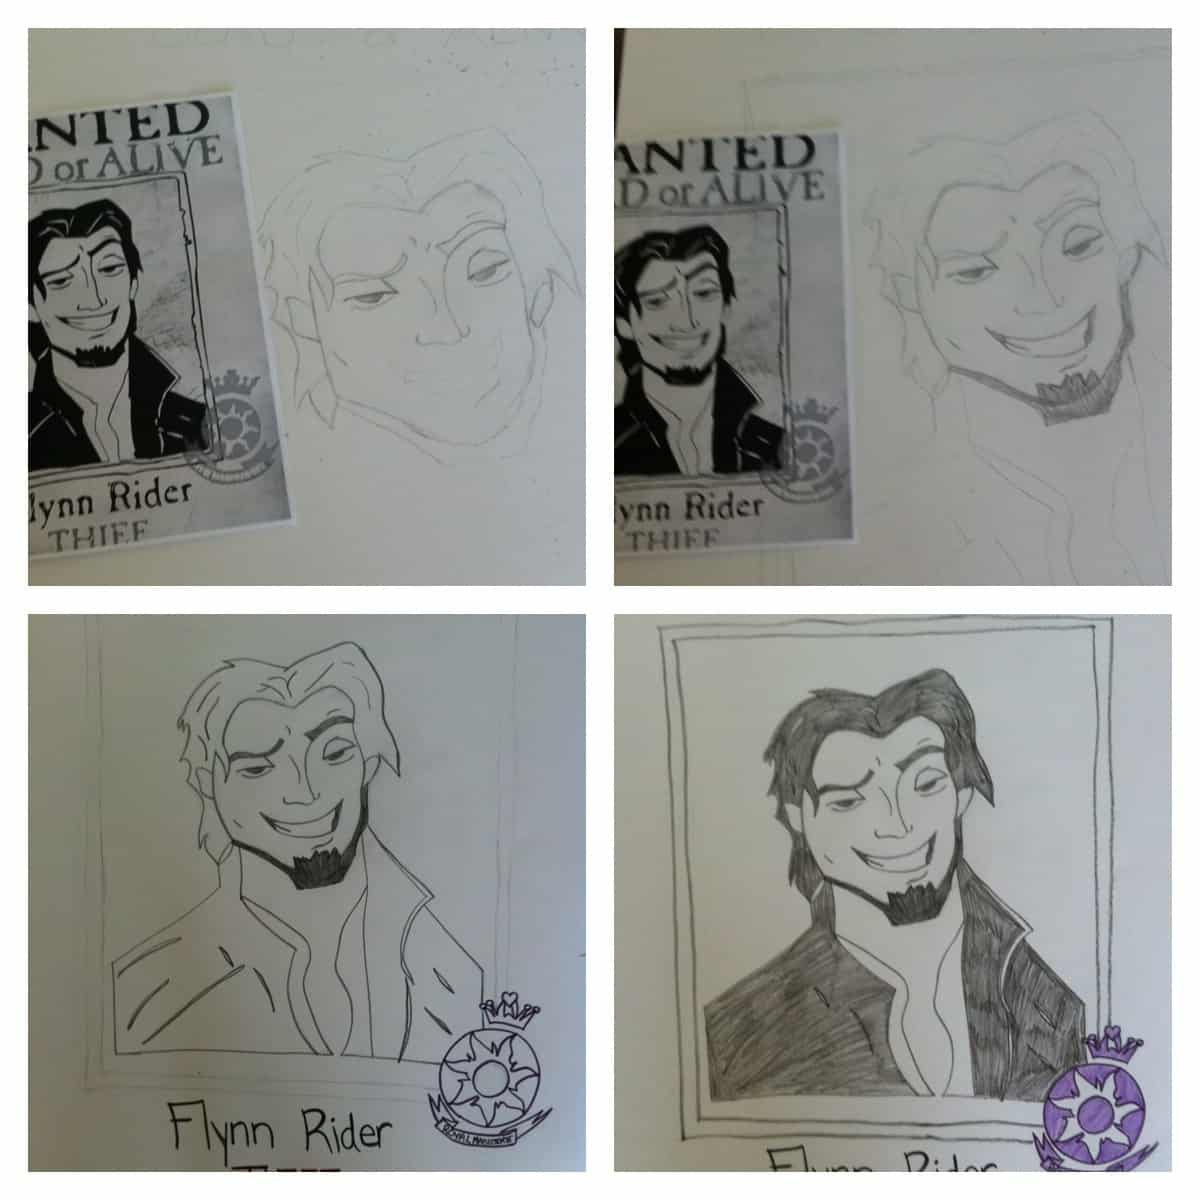 Flynn Rider Wanted Poster http://www.teachablemommy.com/2012/03/14/tangled-birthday-party-games-activities/